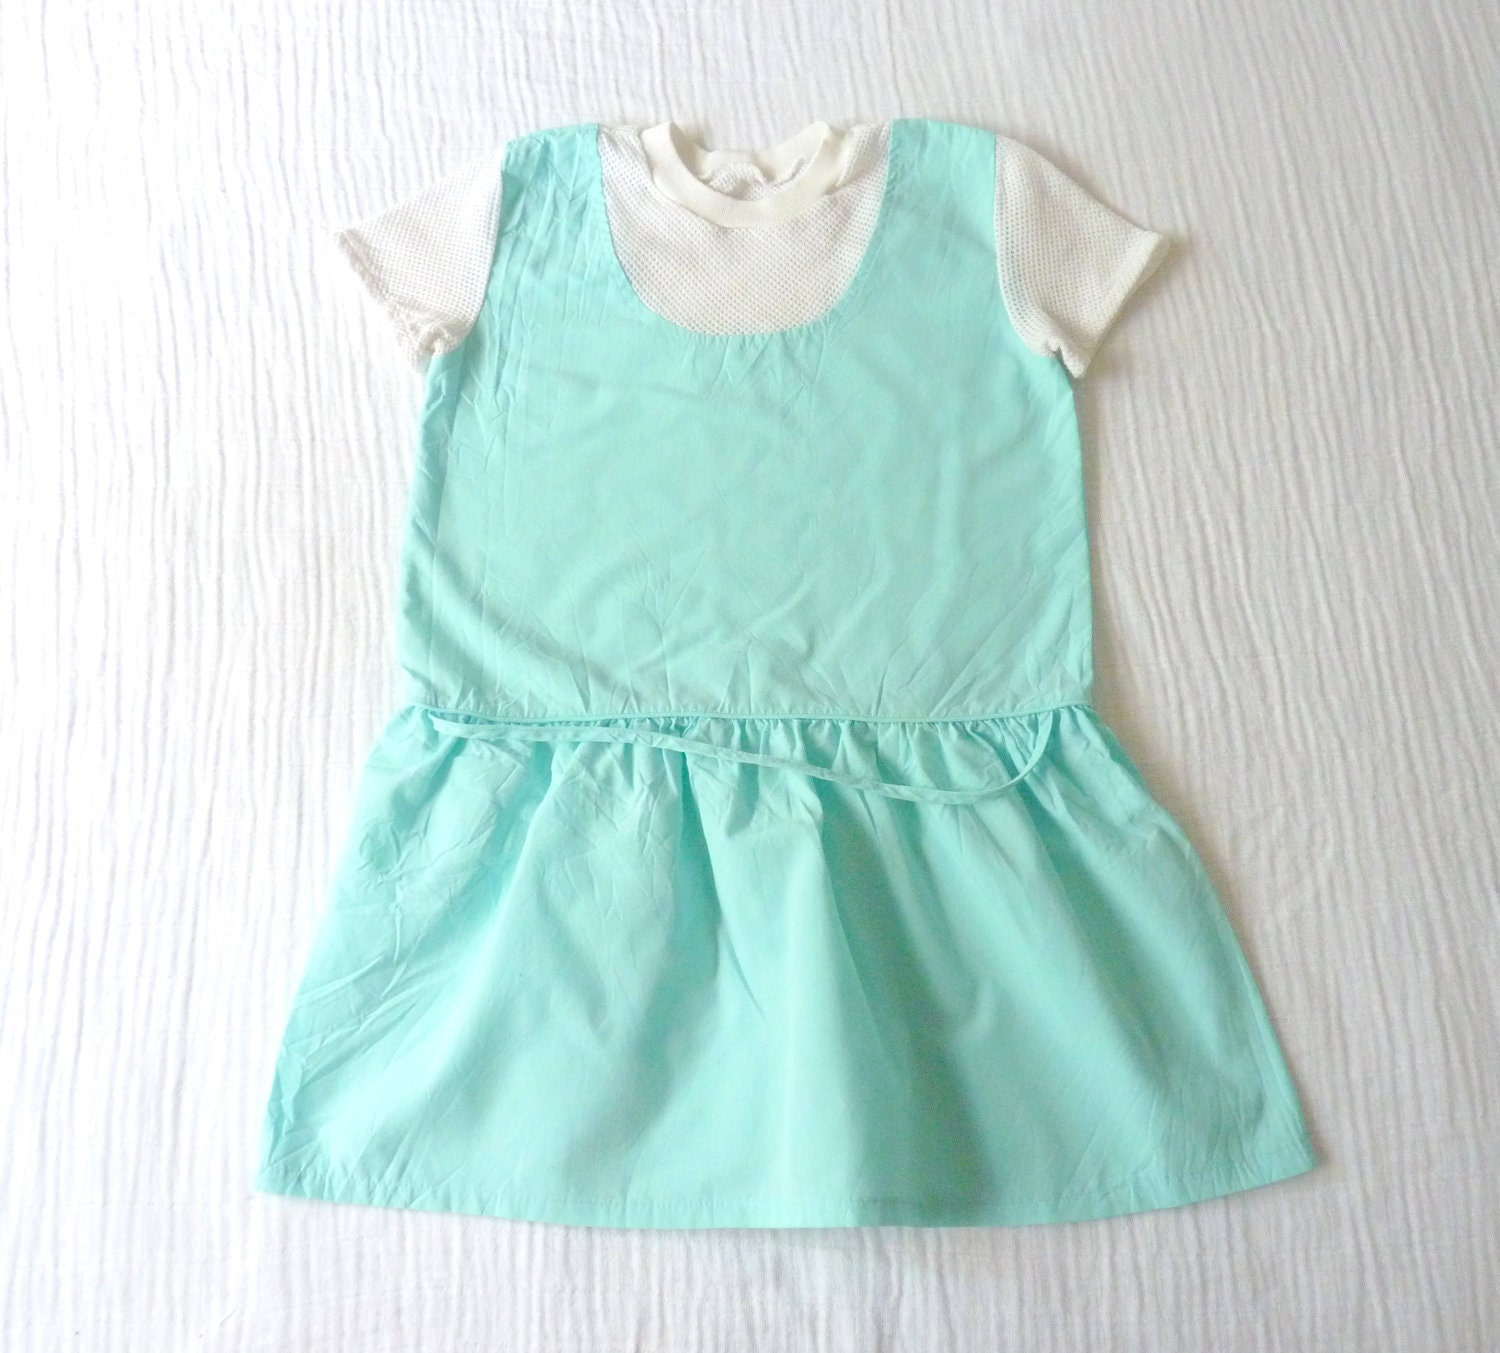 Vintage 80s girls dress, 5T. Aqua/mint green tennis style dress with white mesh. - LazerBabyVintage